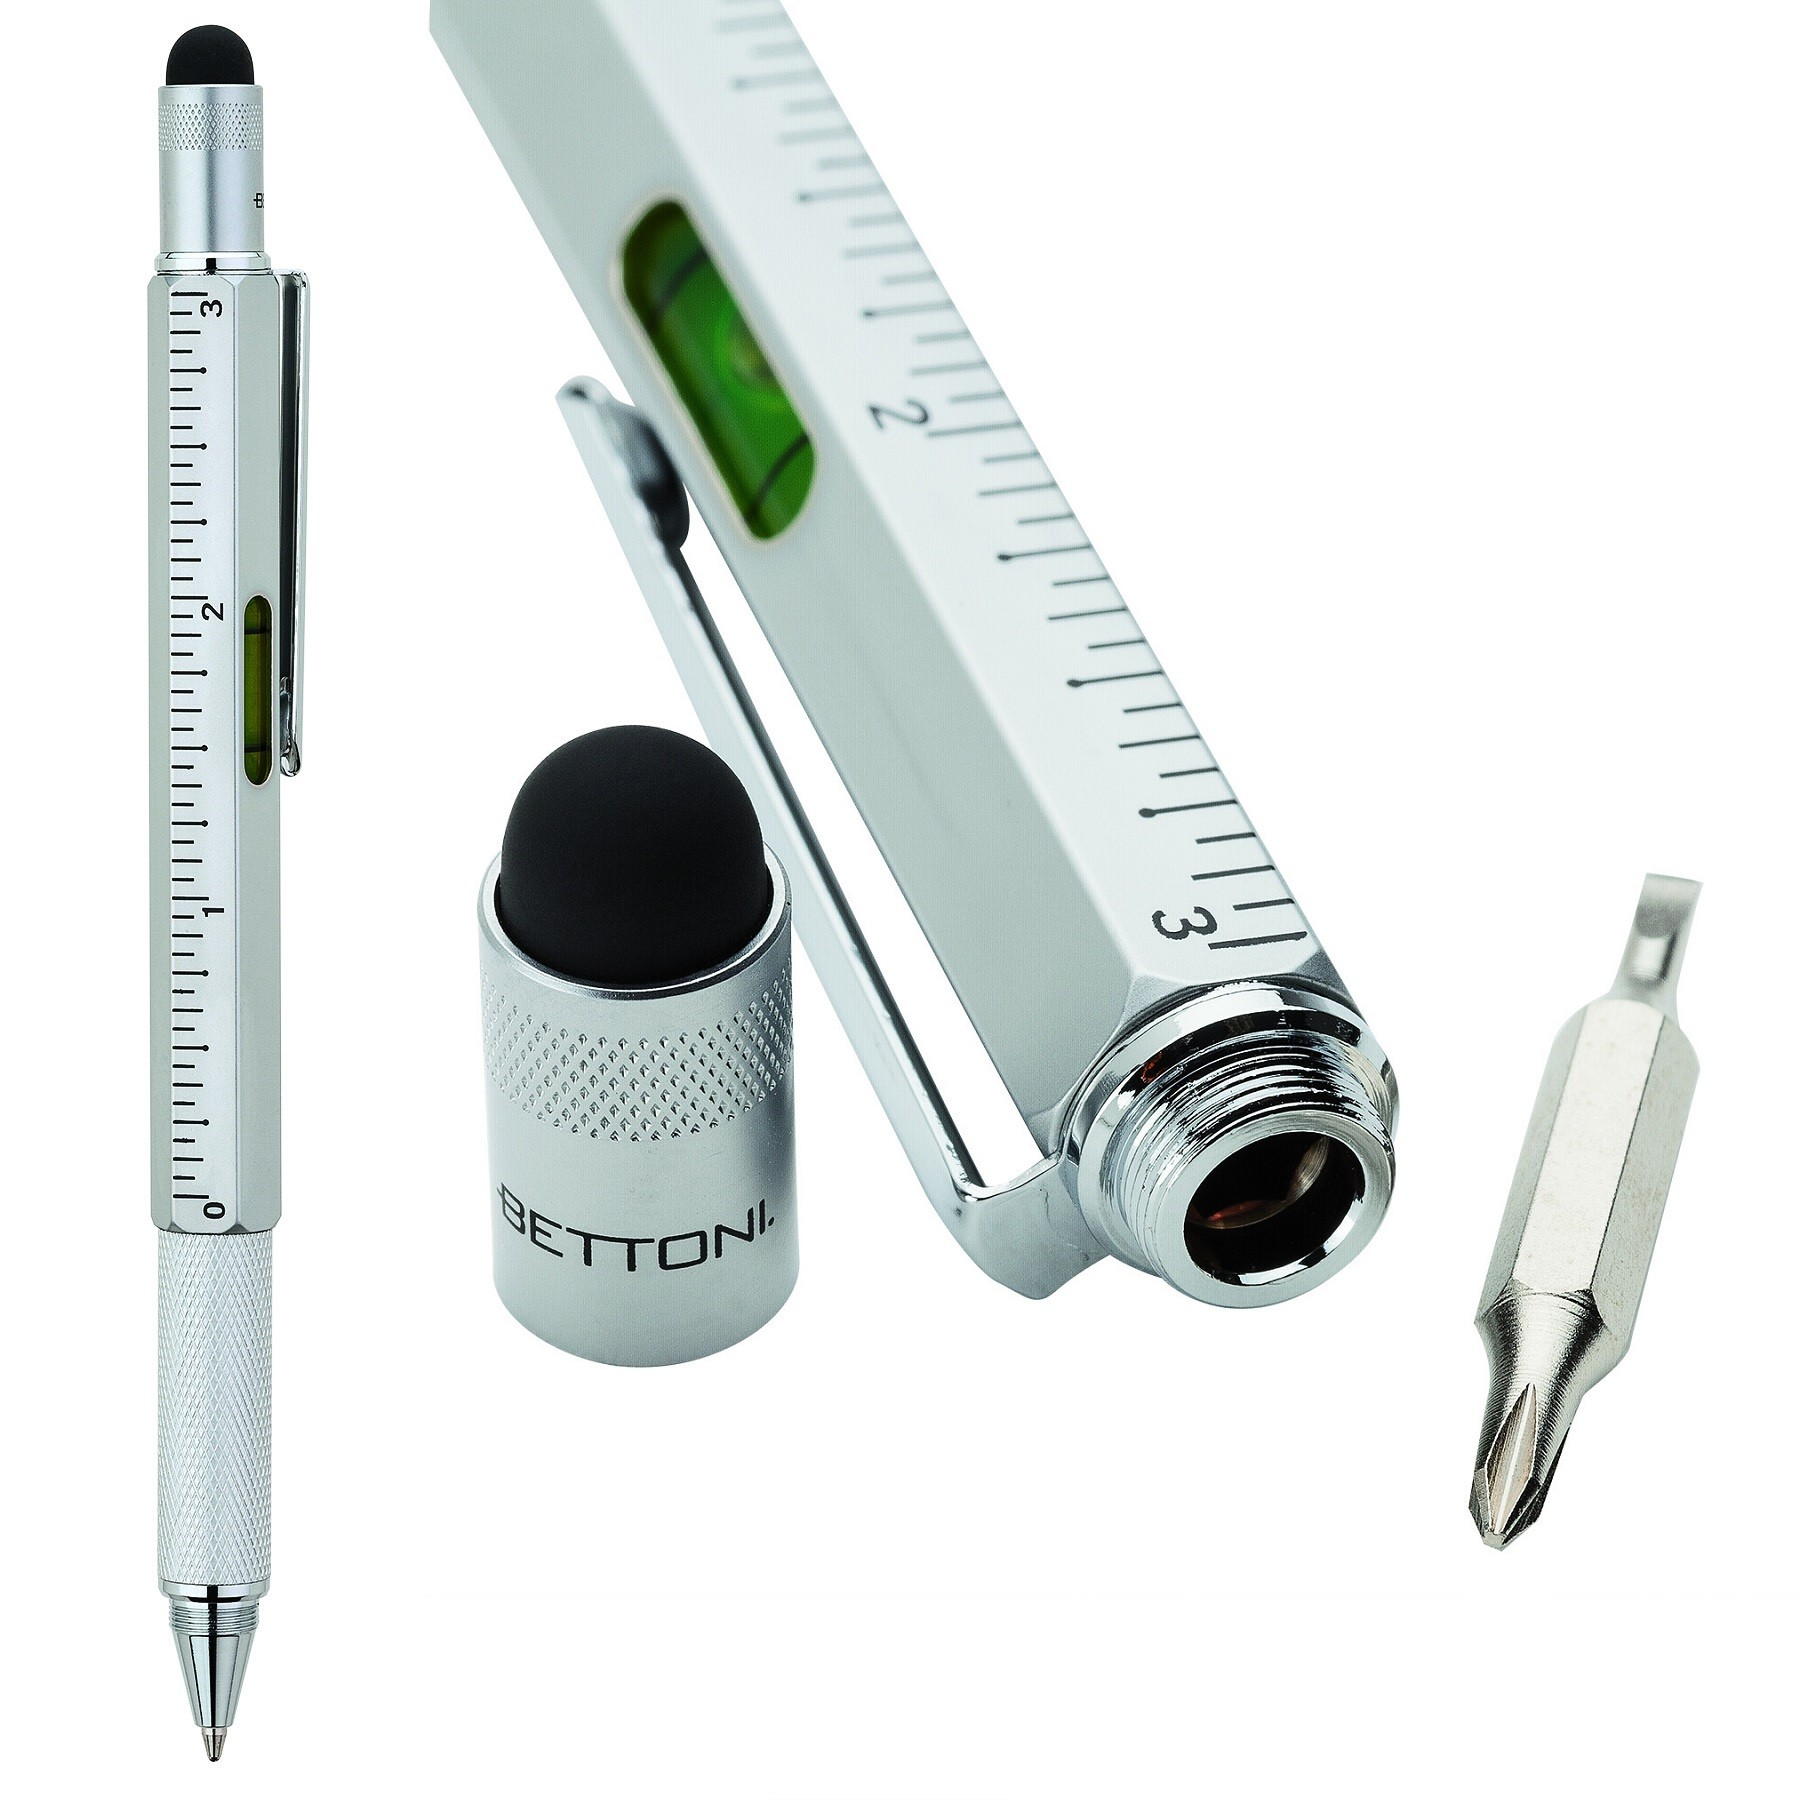 Bettoni® Barletta 5-In-1 Pen